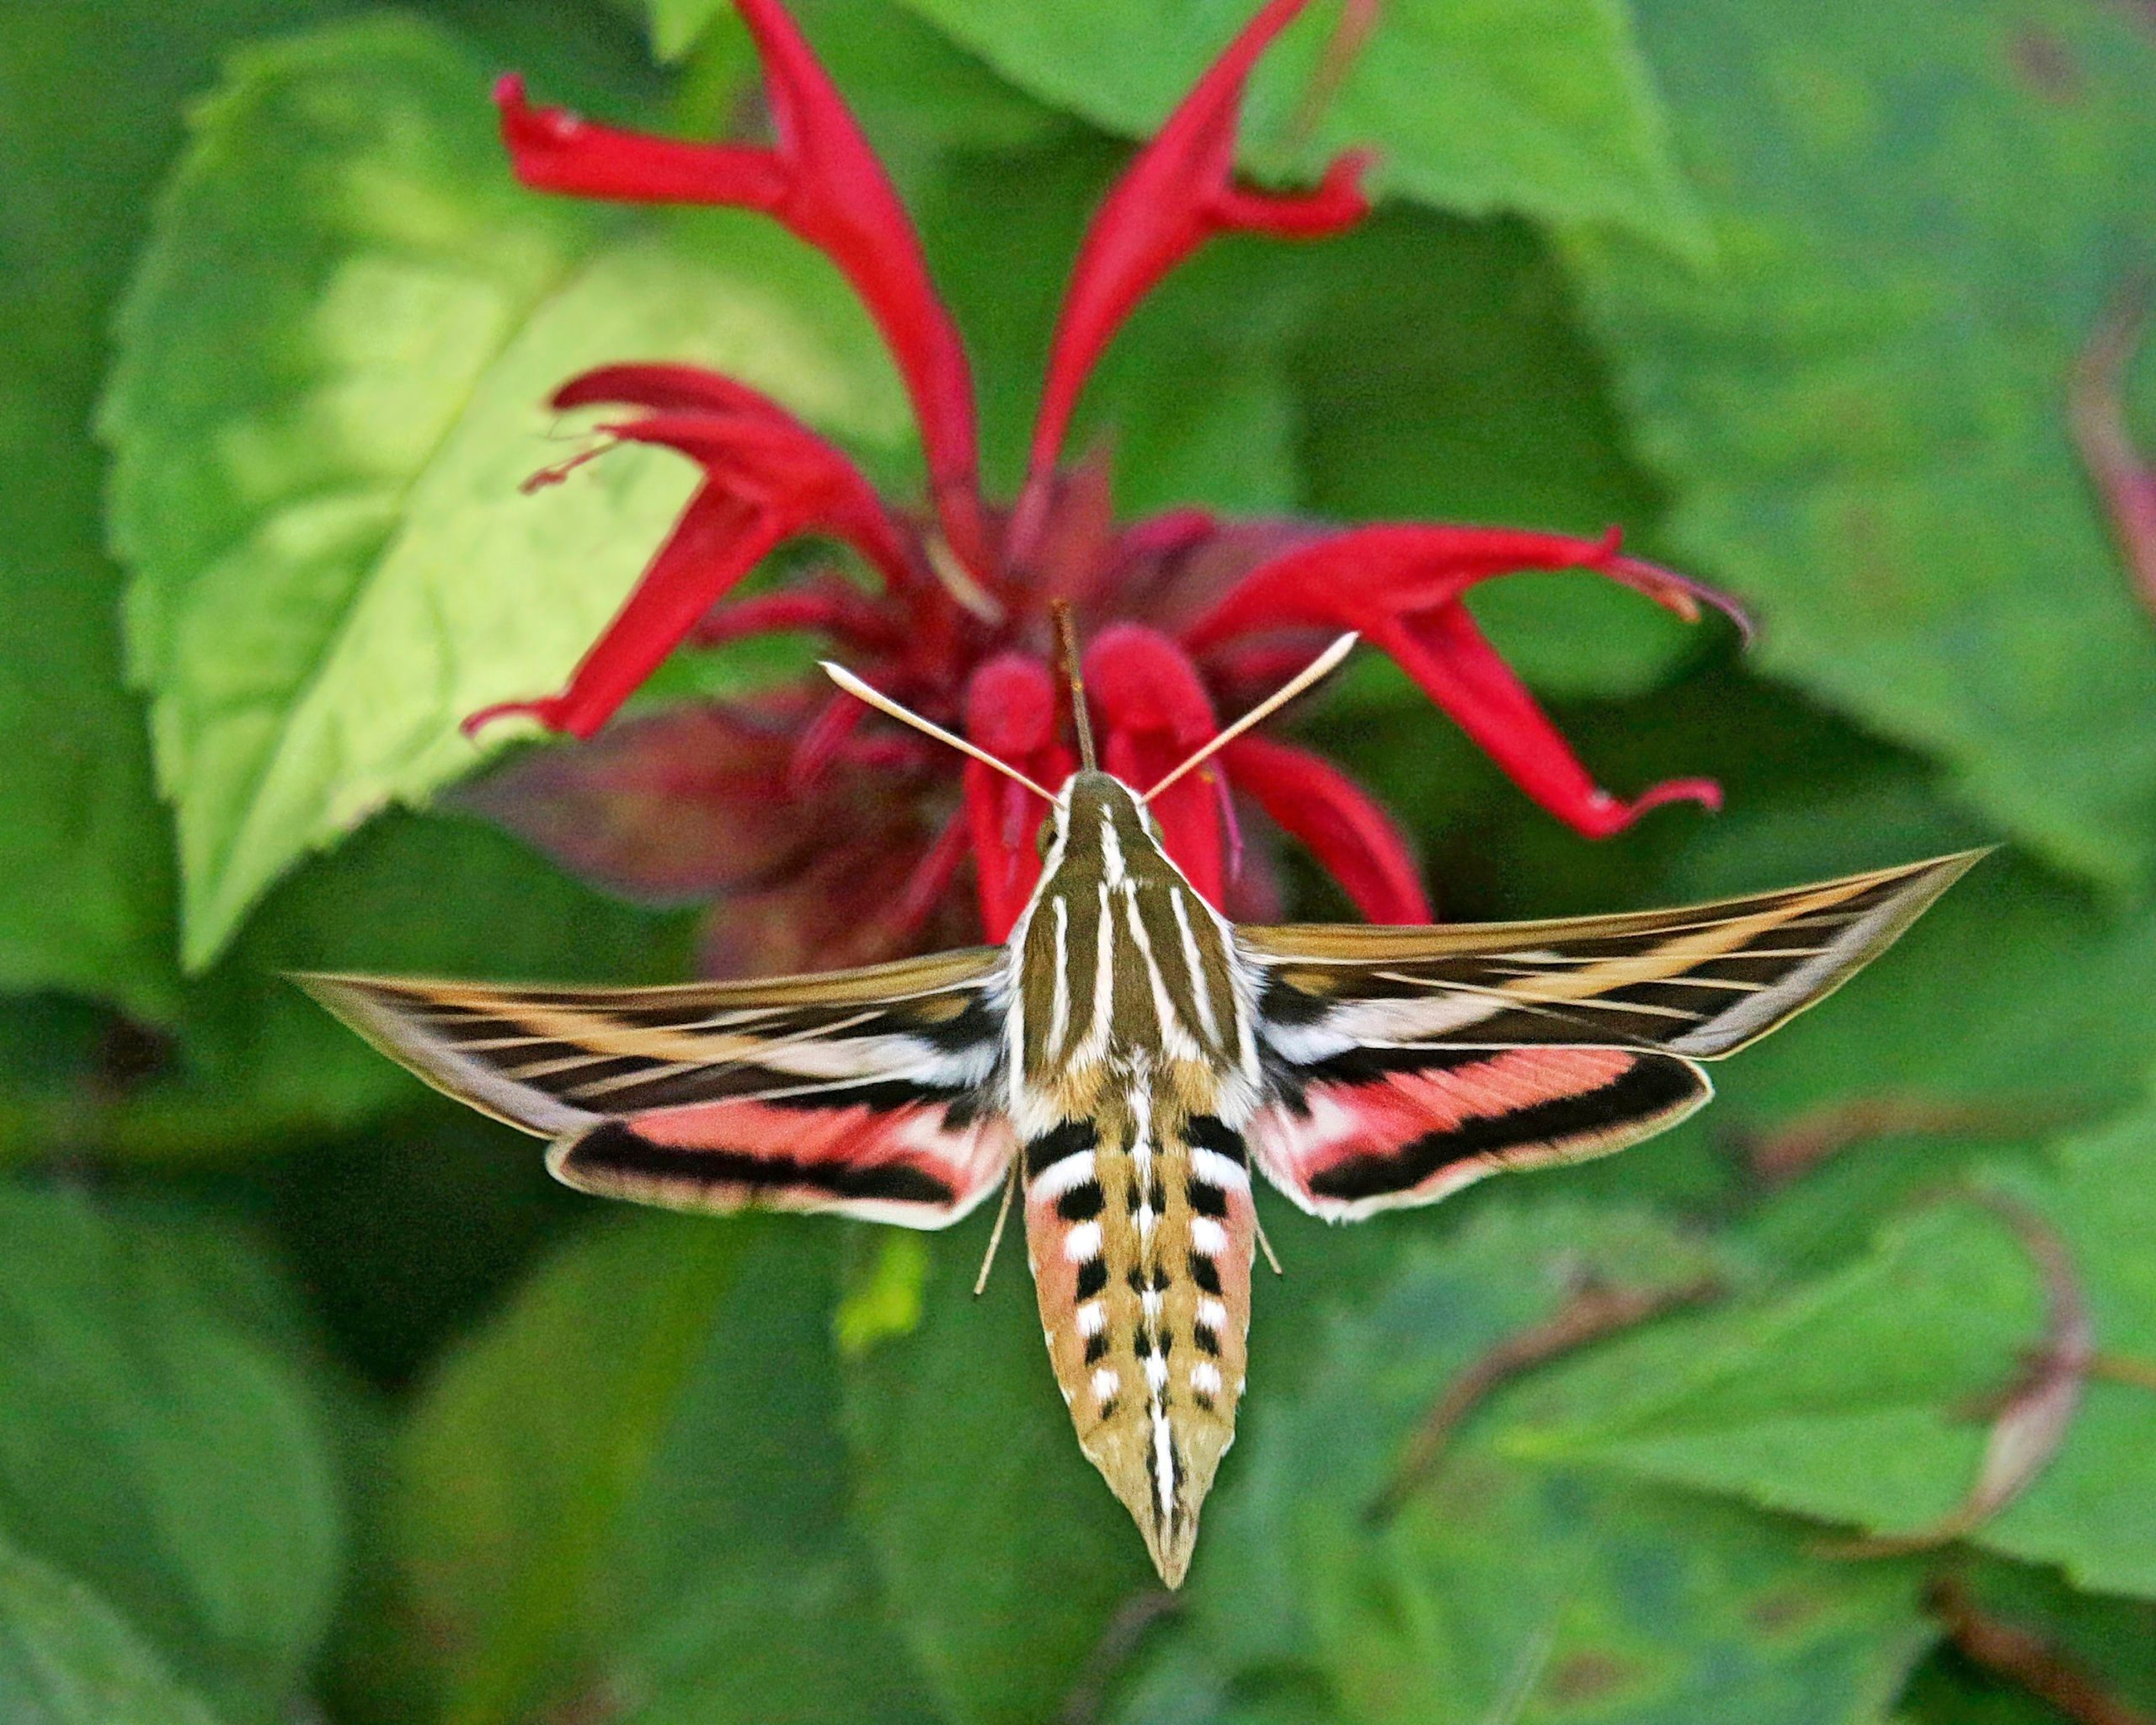 A white-lined sphinx moth sips nectar from a flower.